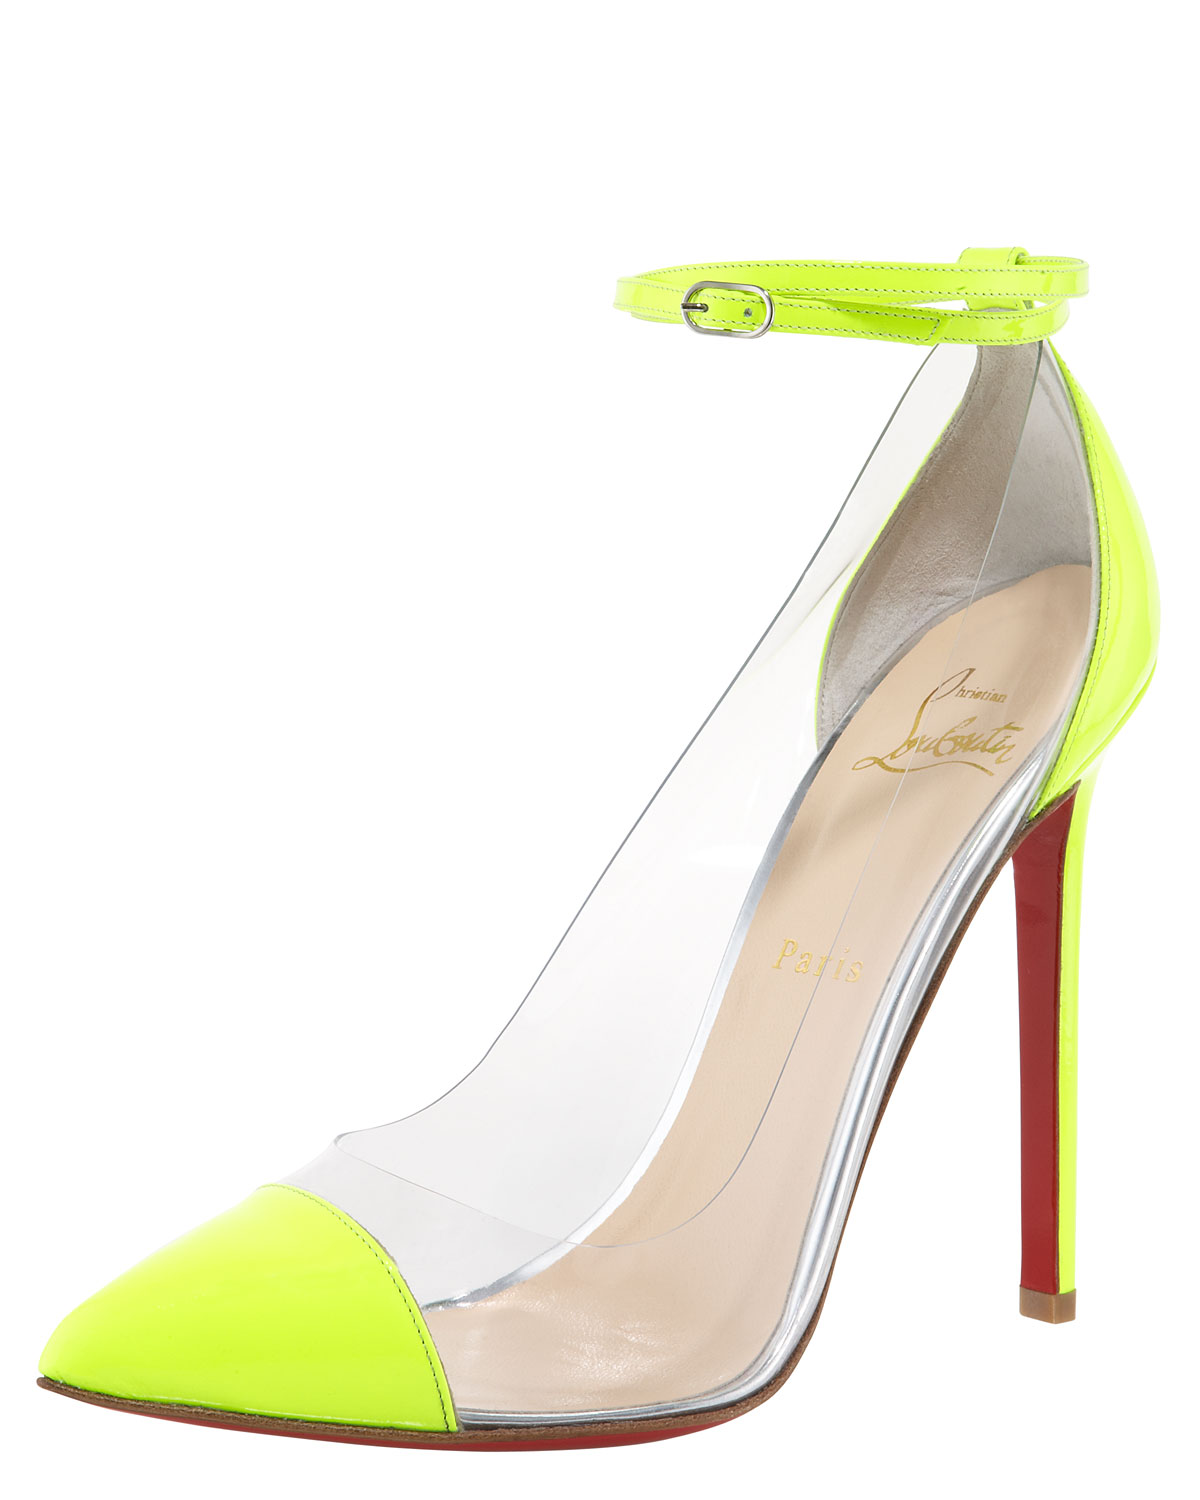 christian louboutin neon unbout illusion pump